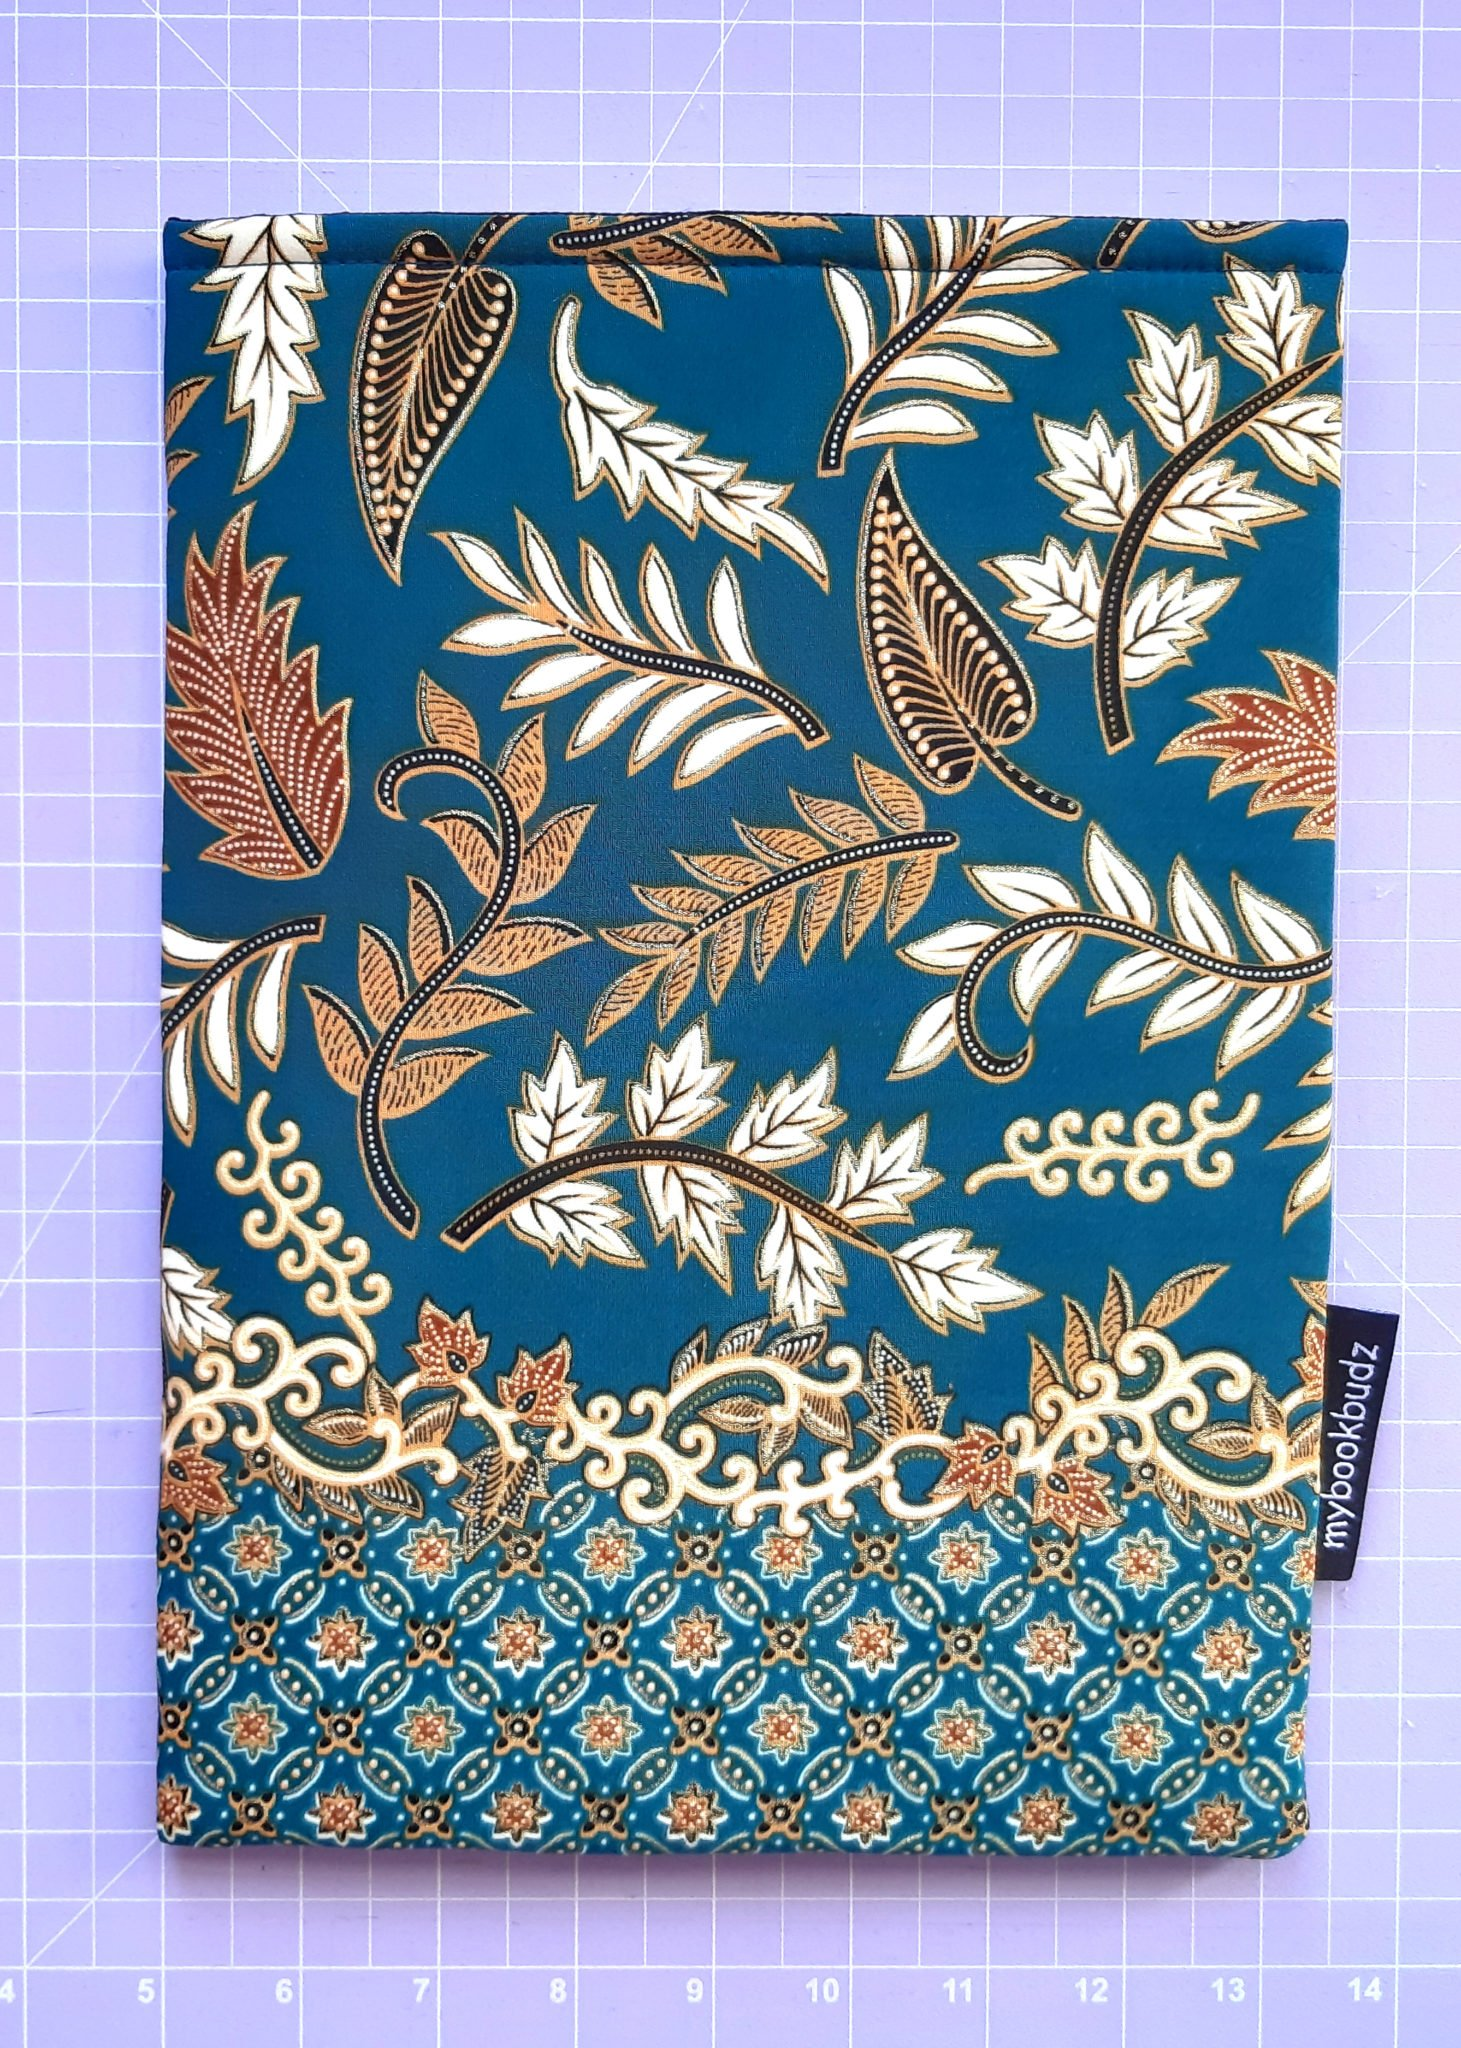 Booksleeve – Autumn Leaves with Border- Turqoise